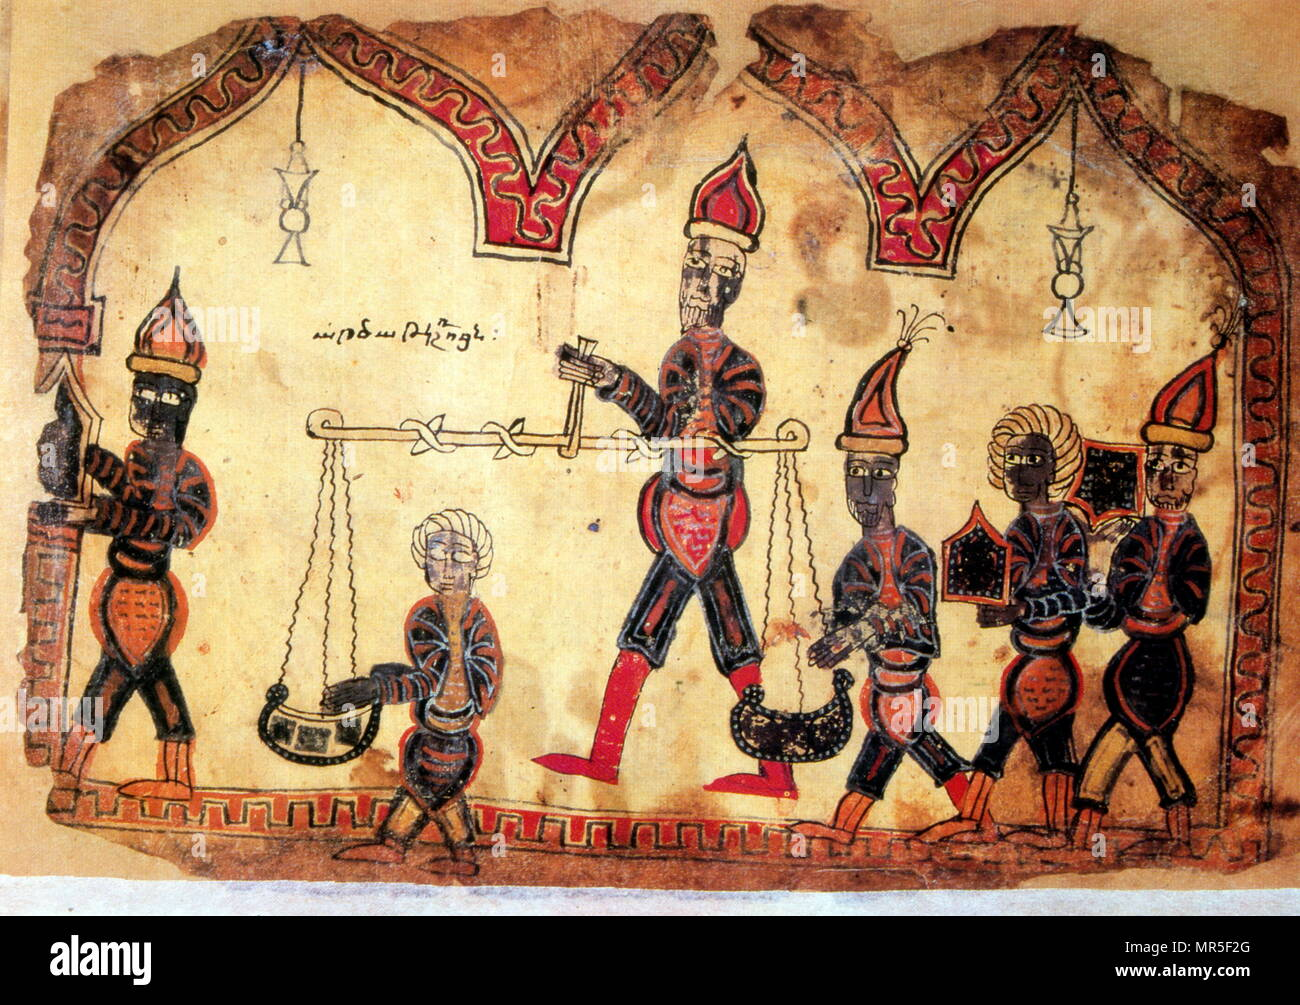 Armenian Christian illustrated manuscript showing the Christian view of the Final Judgement. 14th century - Stock Image